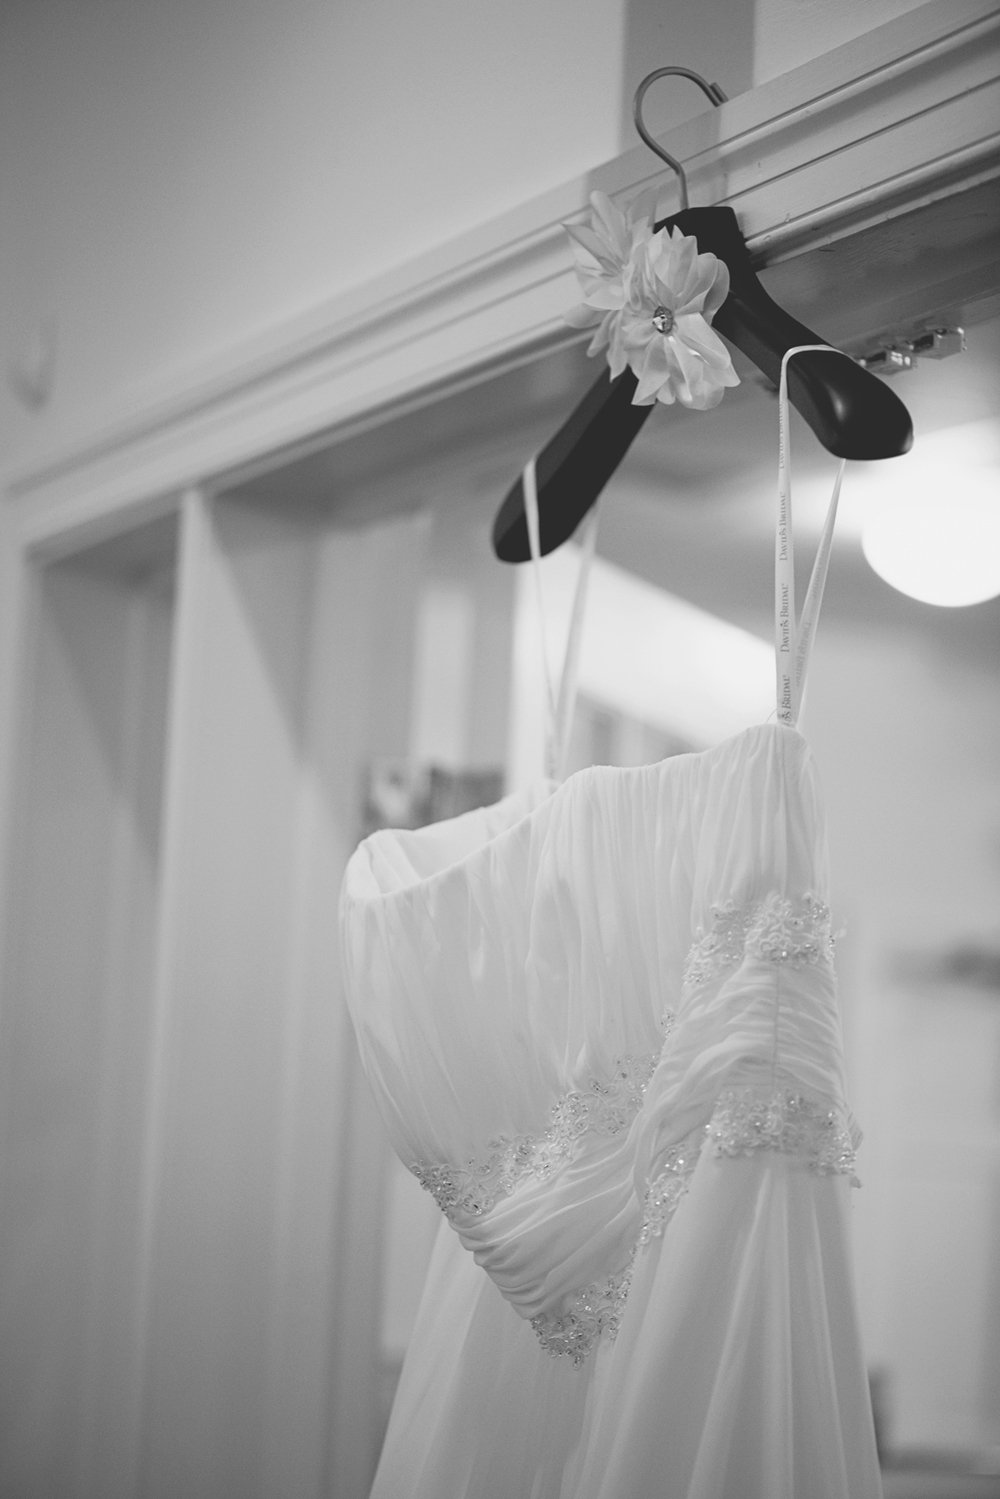 Wedding dress details with handmade hanger (David's Bridal) (black and white)